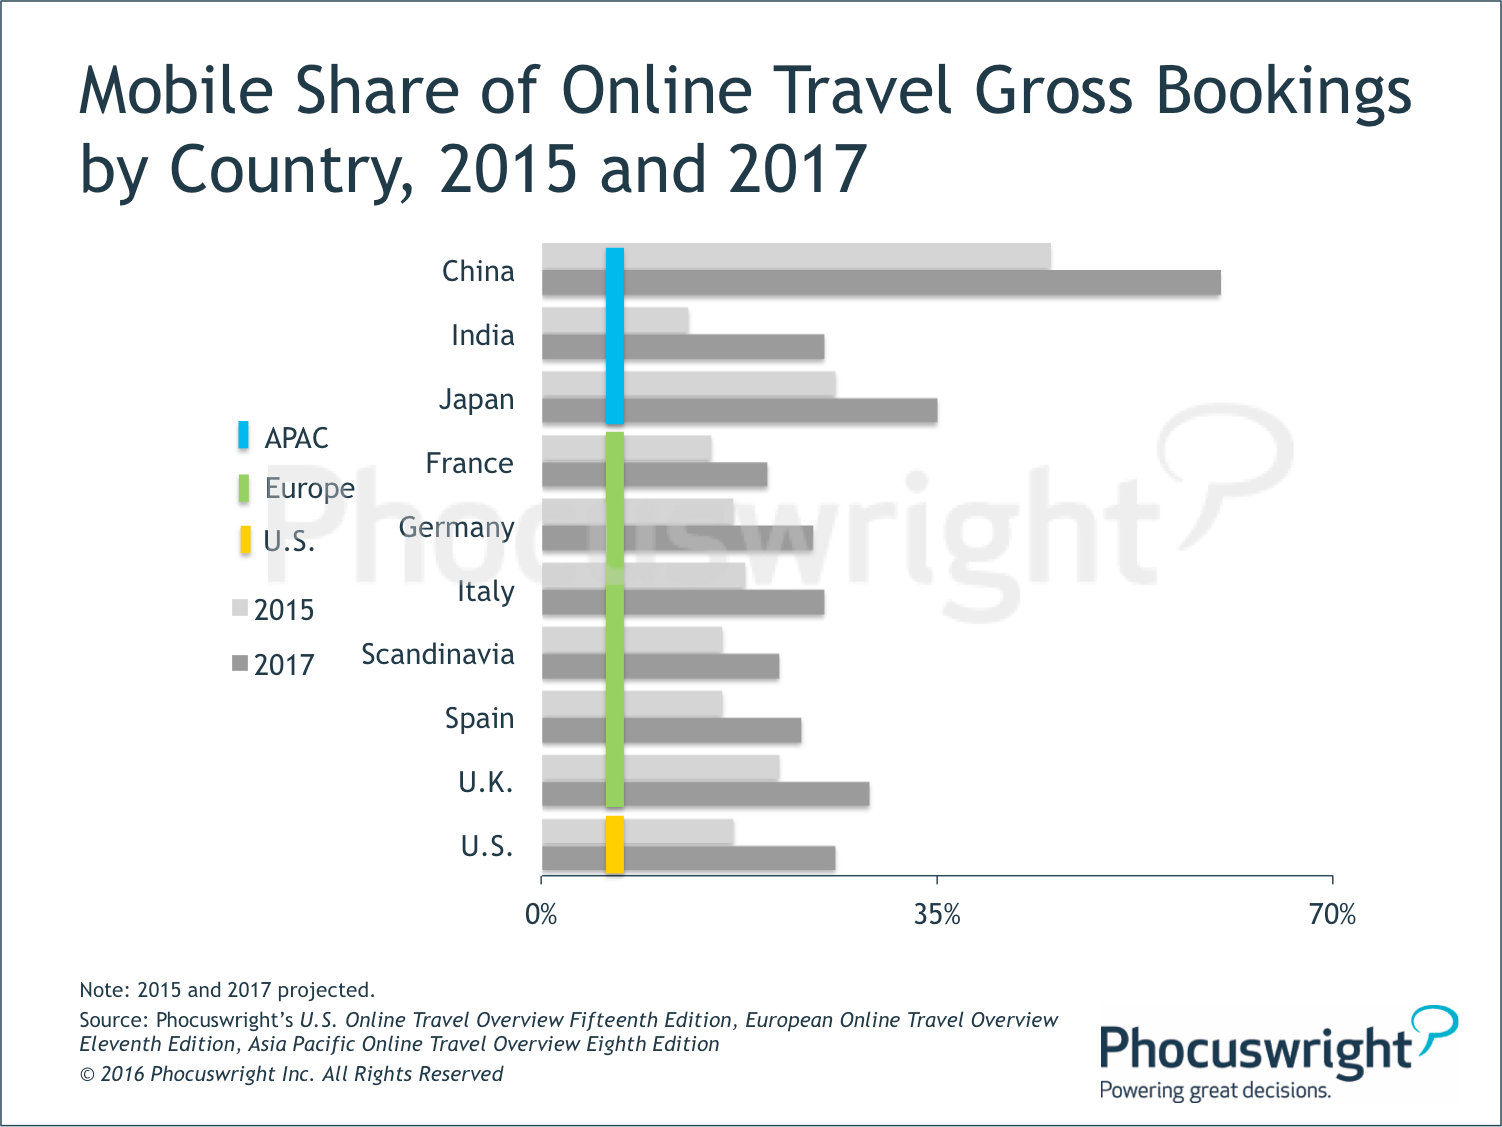 Phocuswright-MobileShareOnlineTravelGrossBookingsByCountry.png